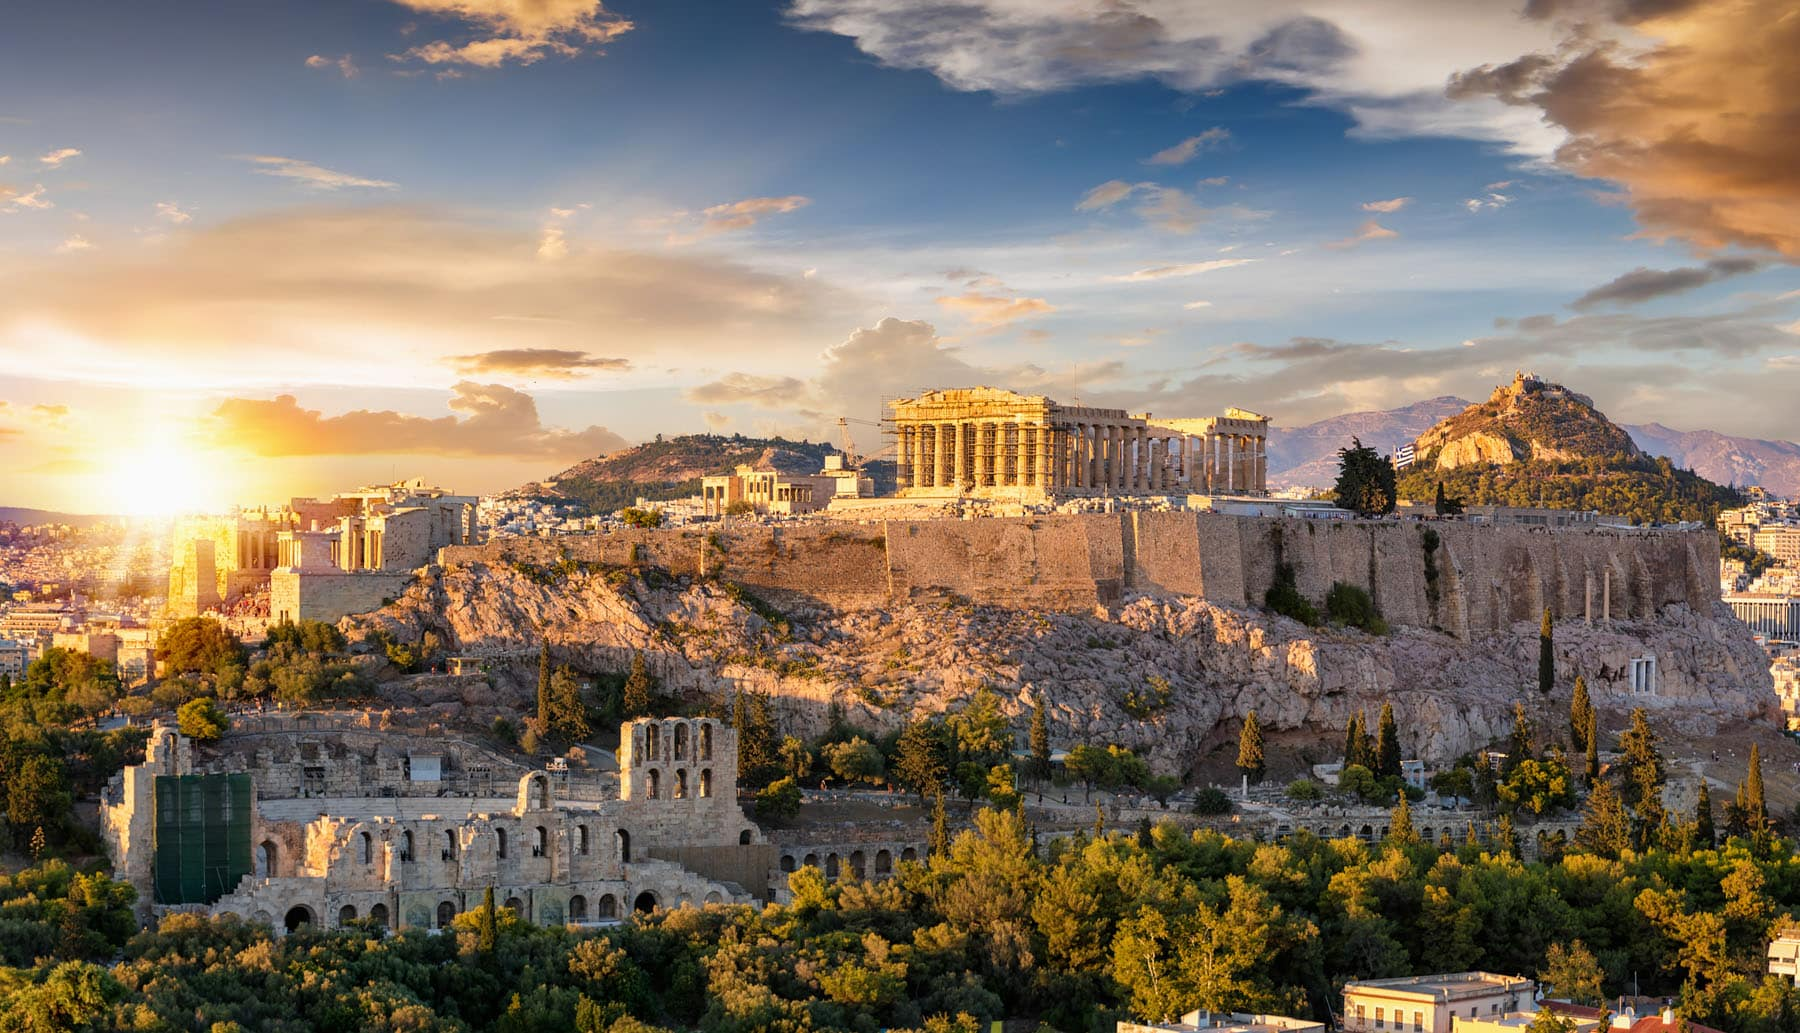 The Acropolis of Athens - Partenza Travel creates luxury travel packages to Greece